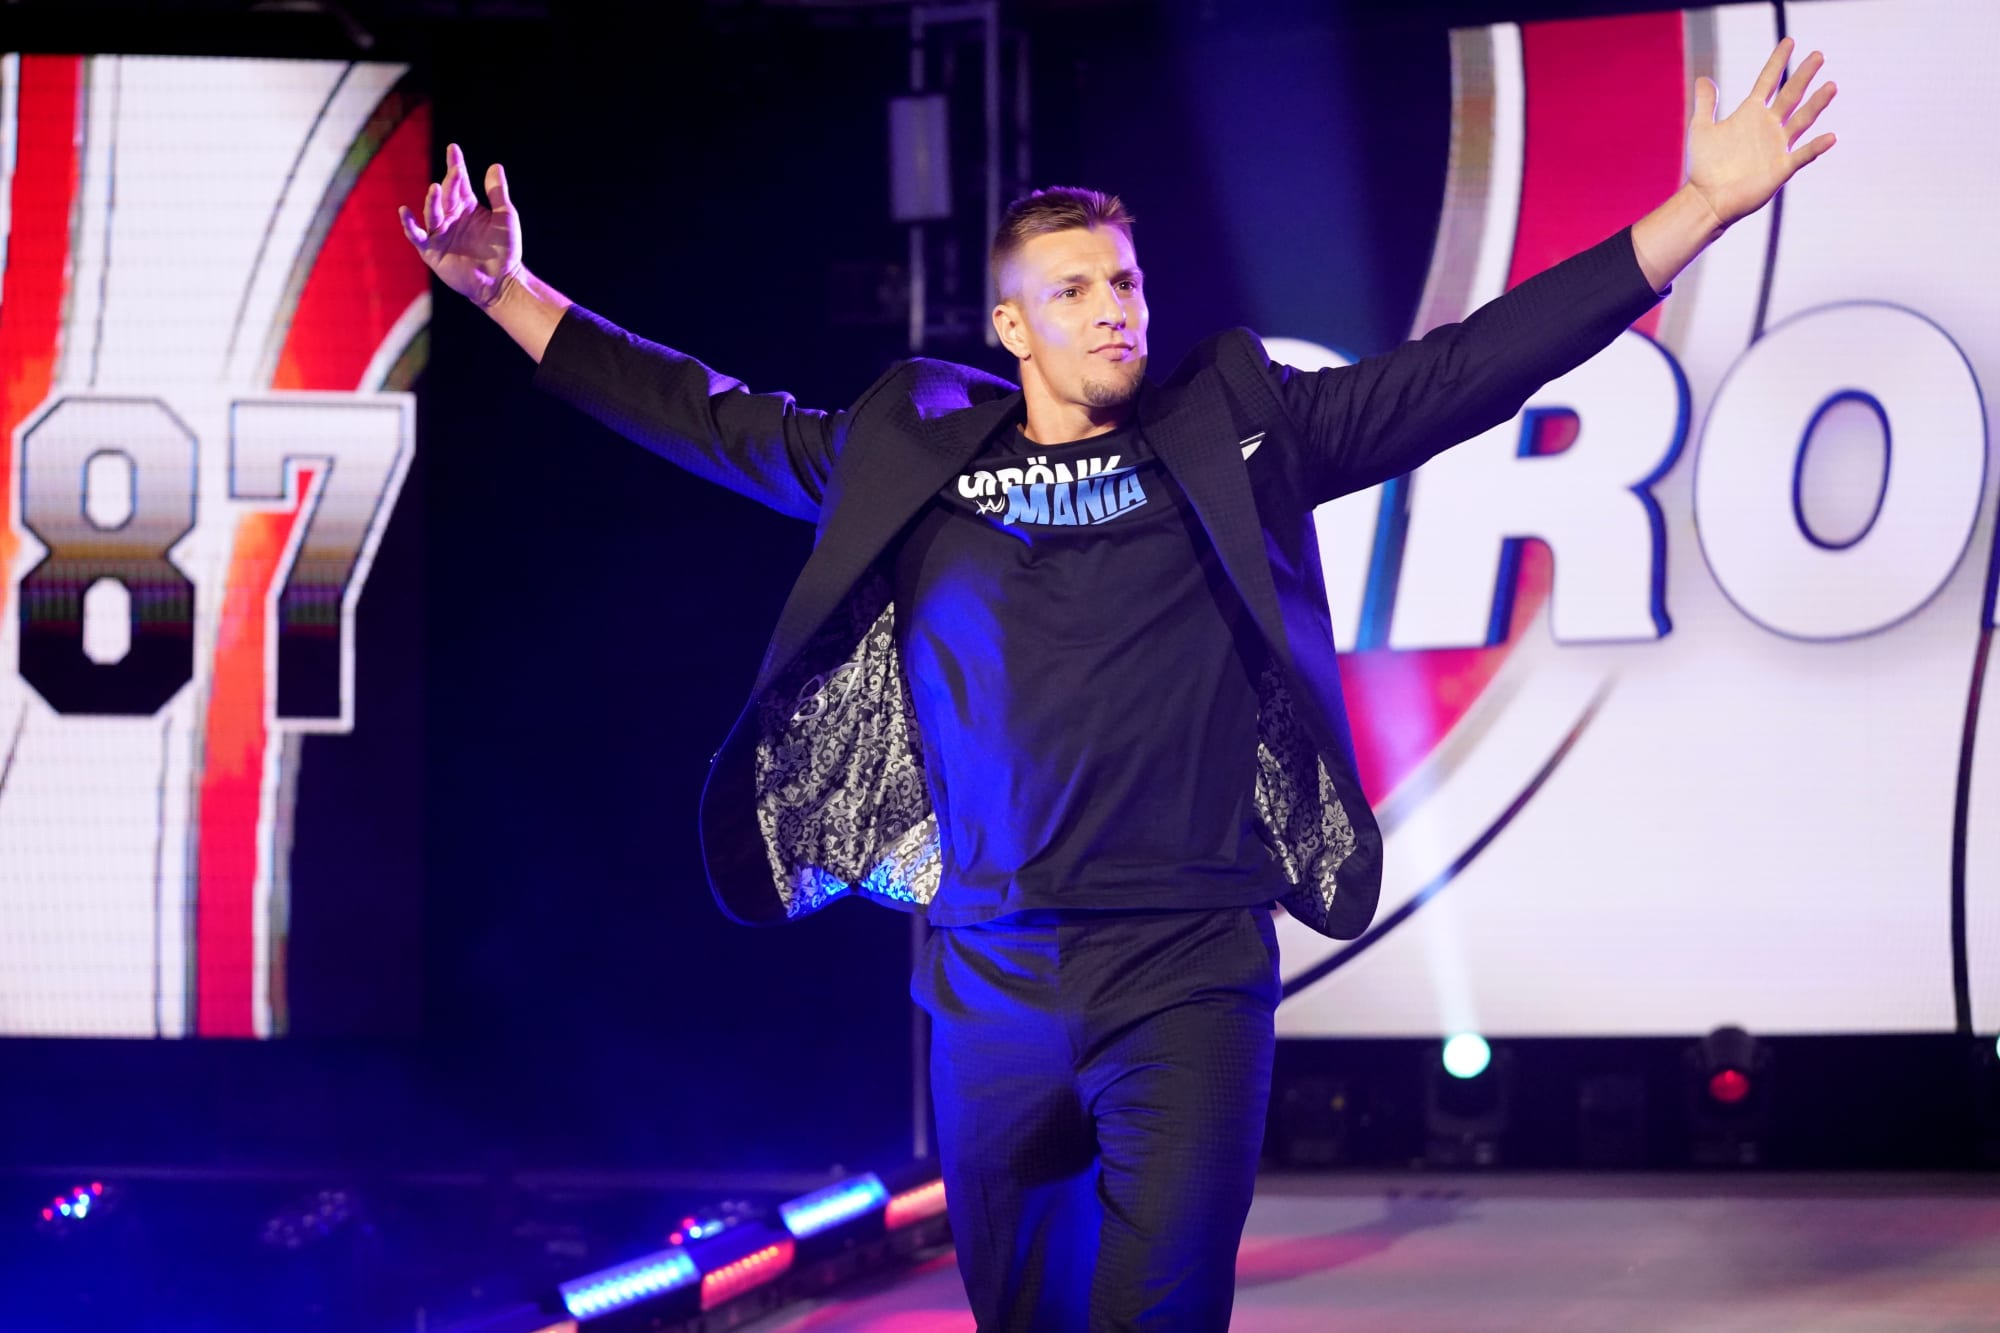 Rob Gronkowski loses the WWE 24/7 championship to R-Truth on Raw